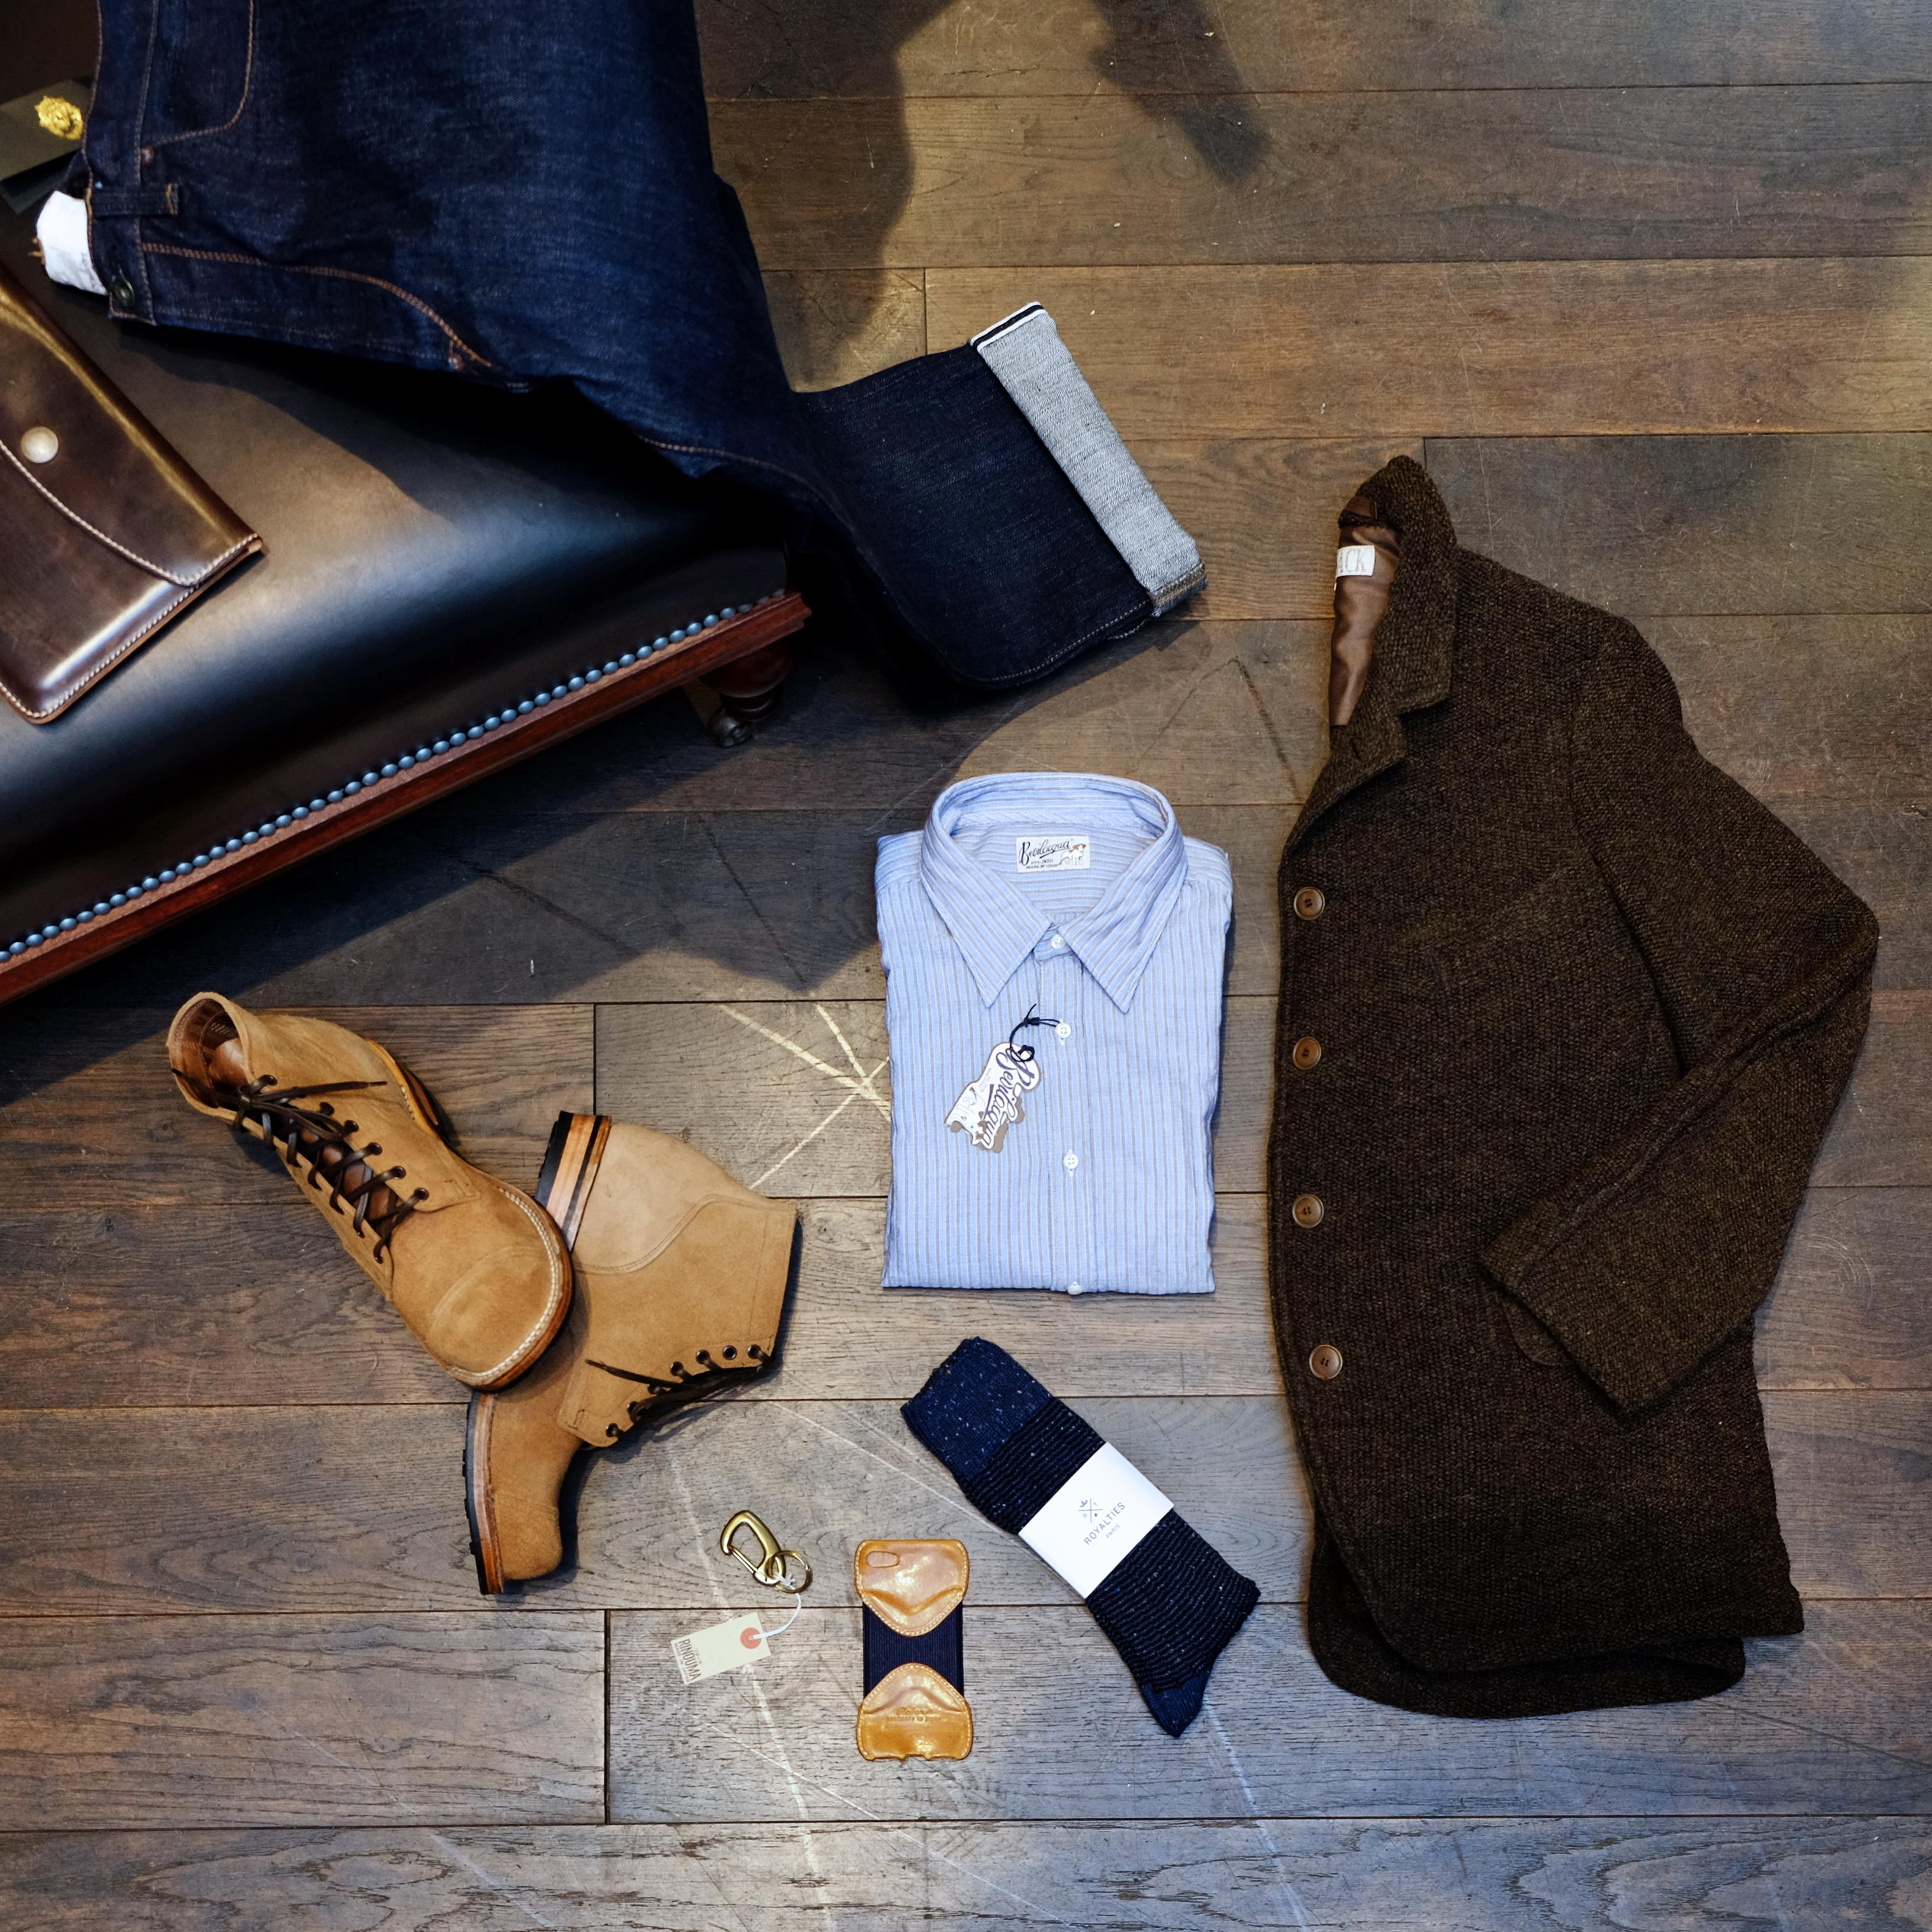 alltag-outfit-haversack-jacke-blacksign-jeans-bevilacqua-viberg-royalities-timelessleather-roberu